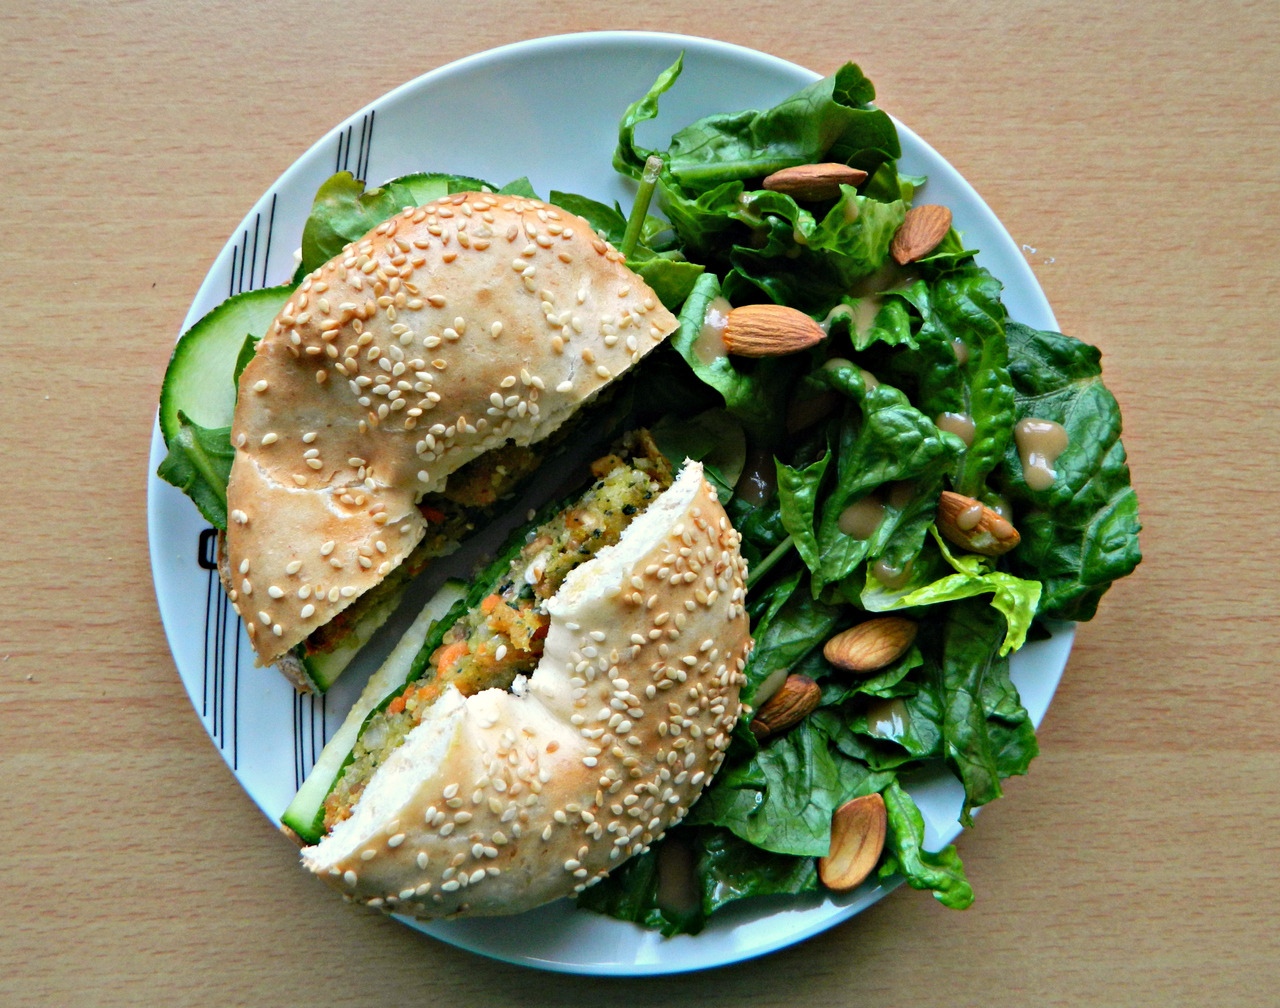 -Toasted sesame seed bagel with hummus, courgette, spinach, nut cutlet and sweet chilli sauce and a romaine & almond salad with a ginger/sesame dressing.